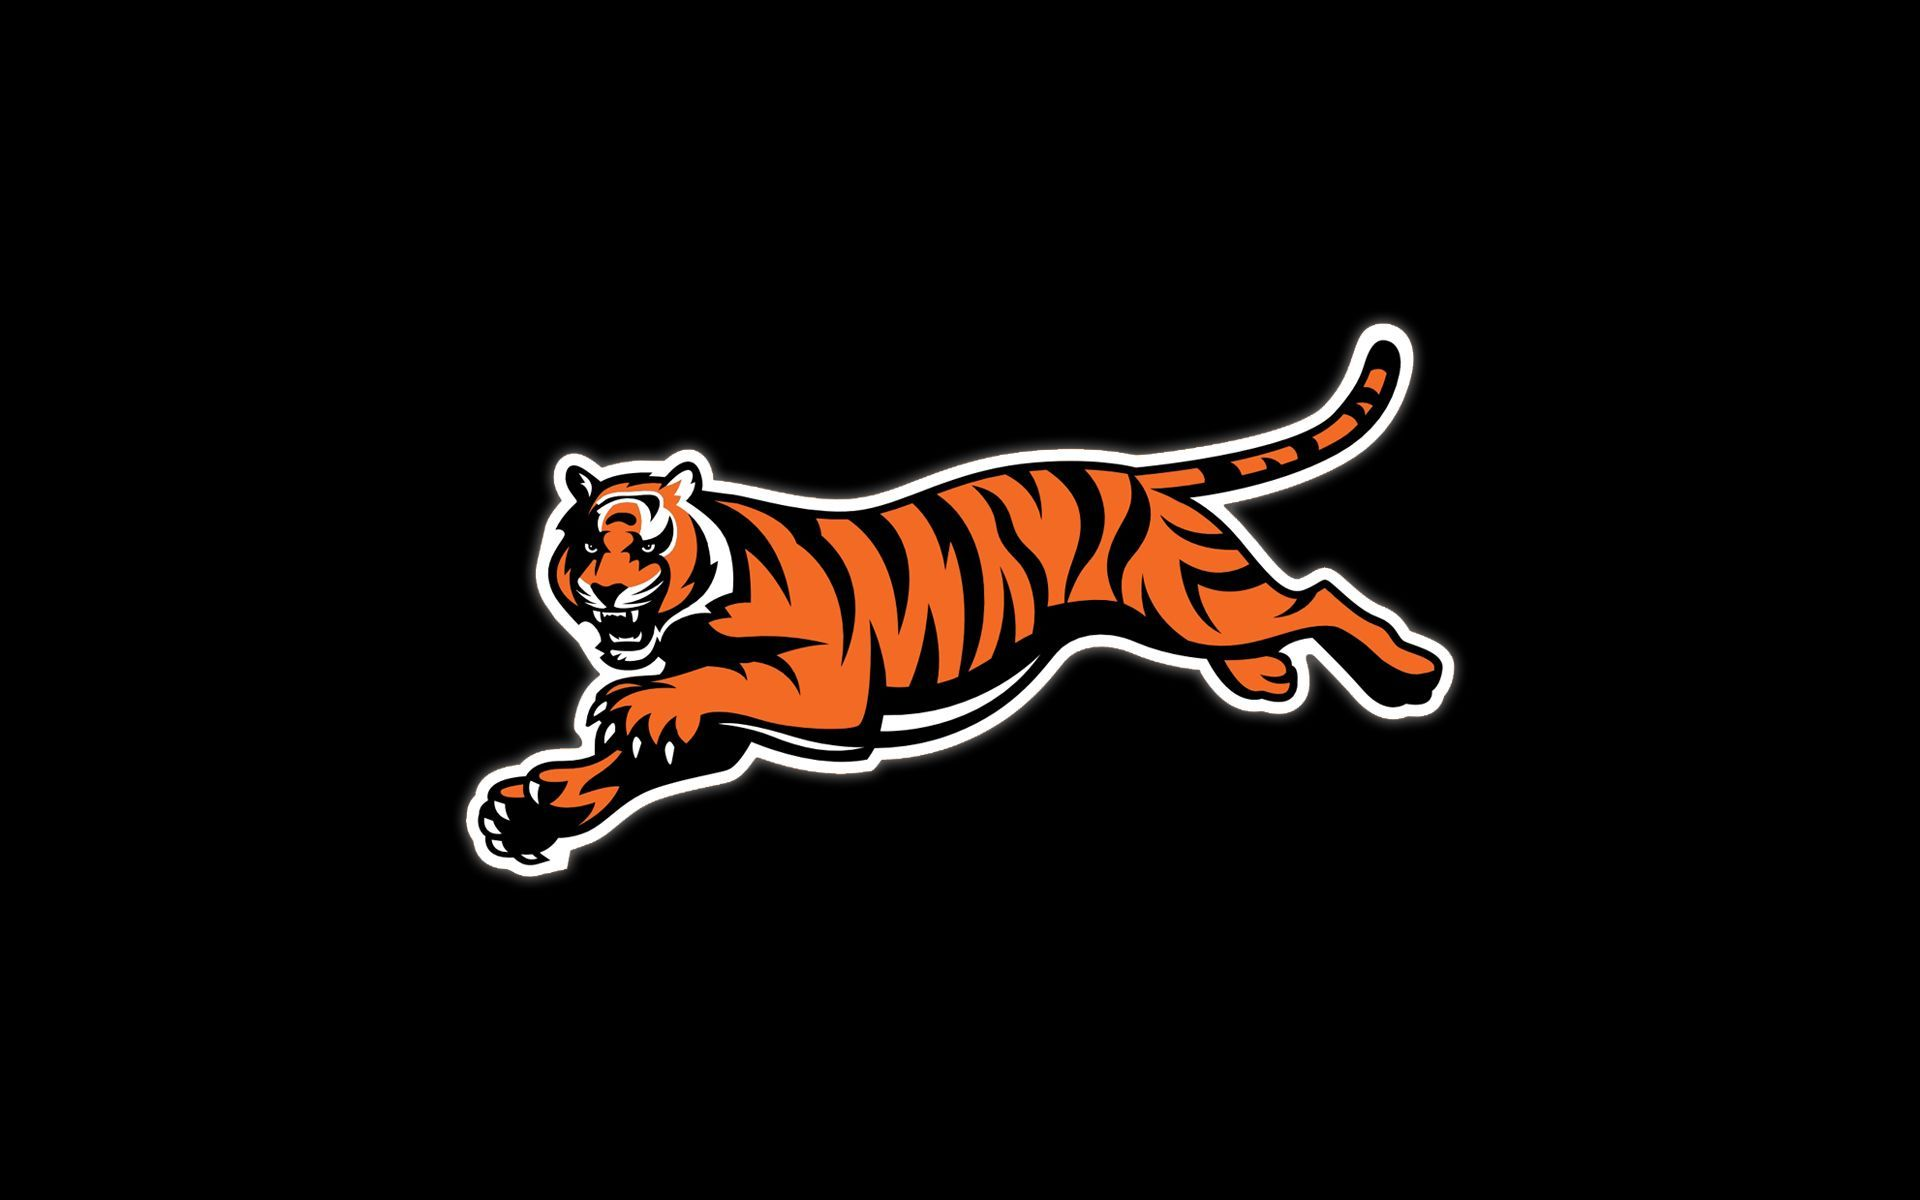 Cincinnati Bengals Wallpapers - Wallpaper Cave